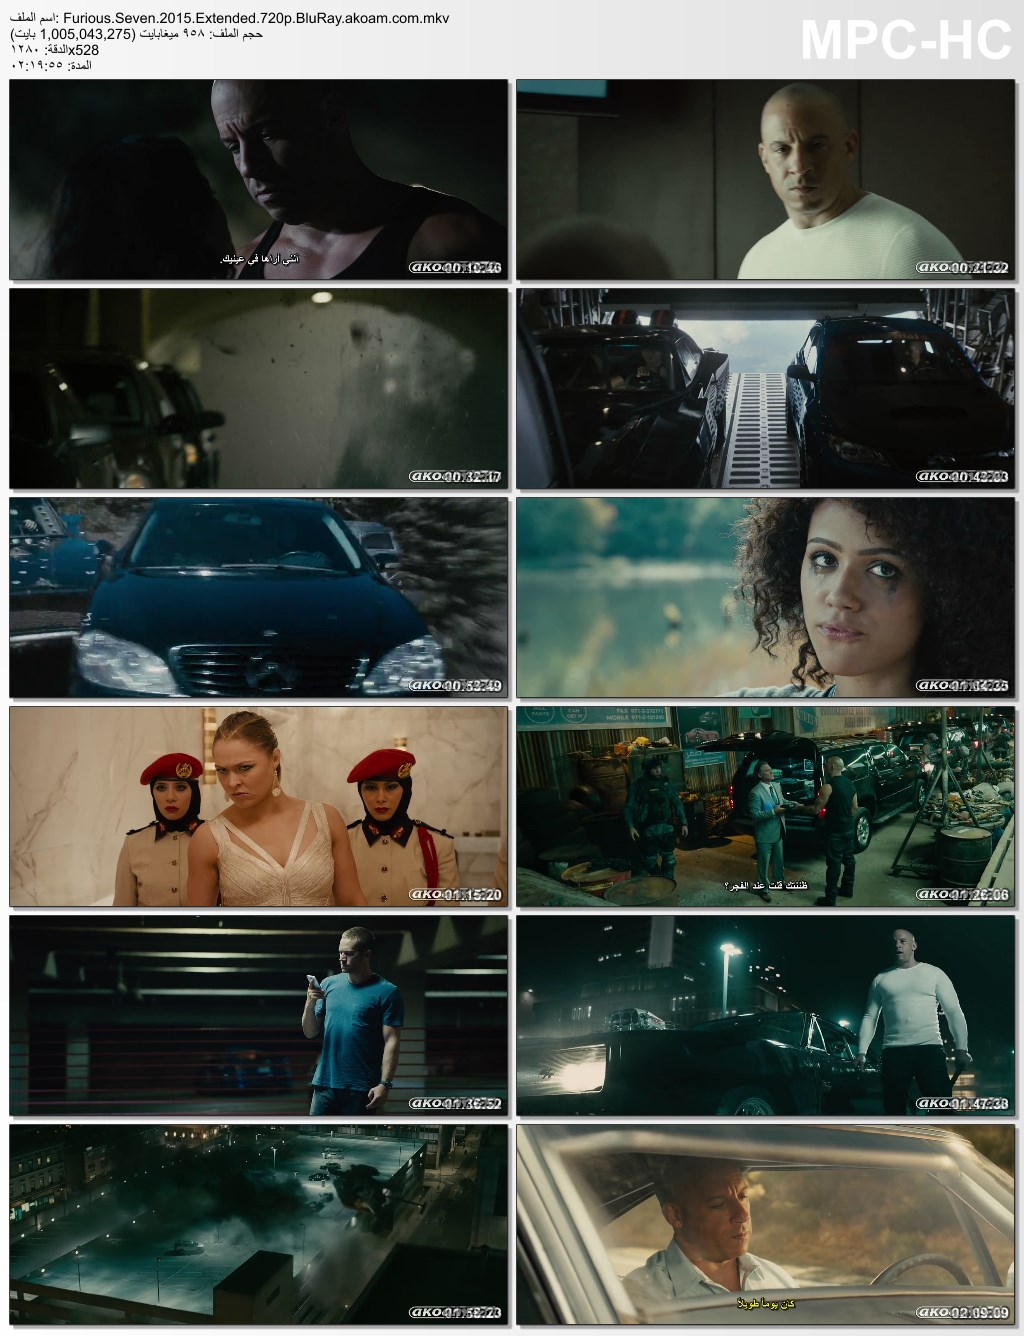 The Fast and the Furious,The Fast and the Furious collection,The Fast and the Furious 1-7,The Fast and the Furious 2001,2Fast 2 Furious,السرعة و الغضب,The Fast and the Furious: Tokyo Drift,Fast & Furious 2009,Fast Five,Furious 6,Fast and Furious 7